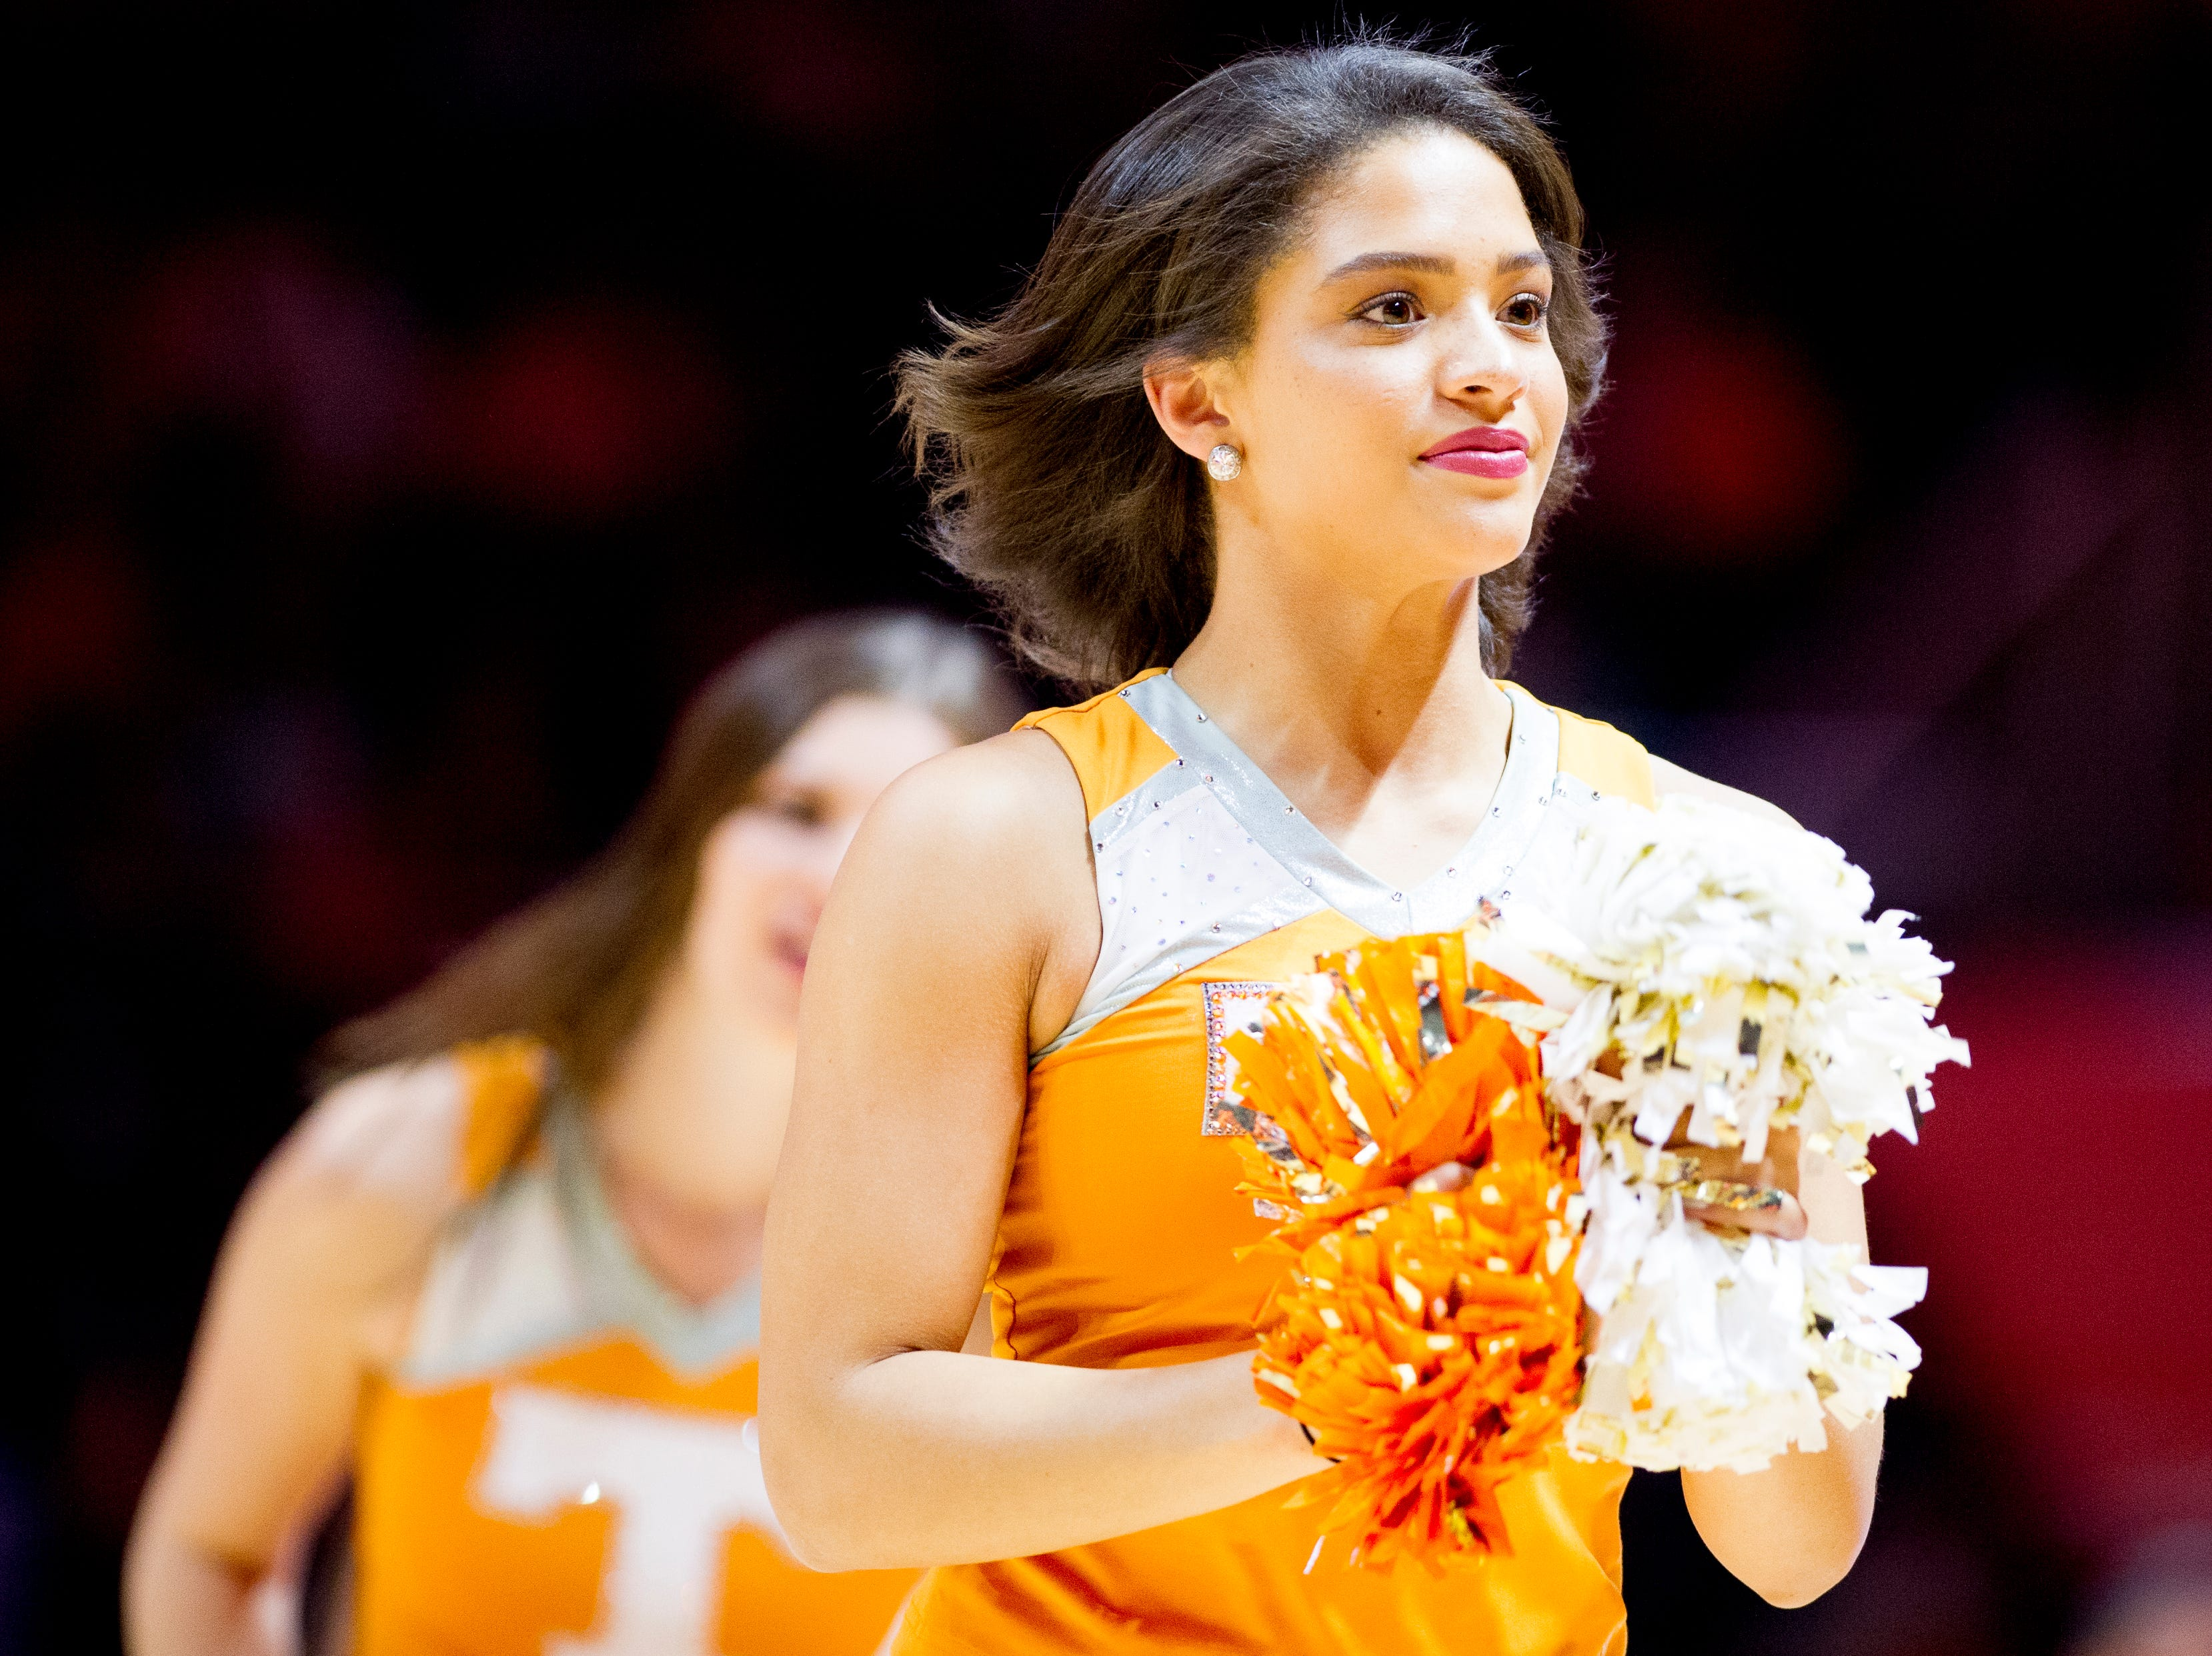 A Tennessee cheerleader runs down the court during a game between Tennessee and Tennessee Tech at Thompson-Boling Arena in Knoxville, Tennessee on Saturday, December 29, 2018.